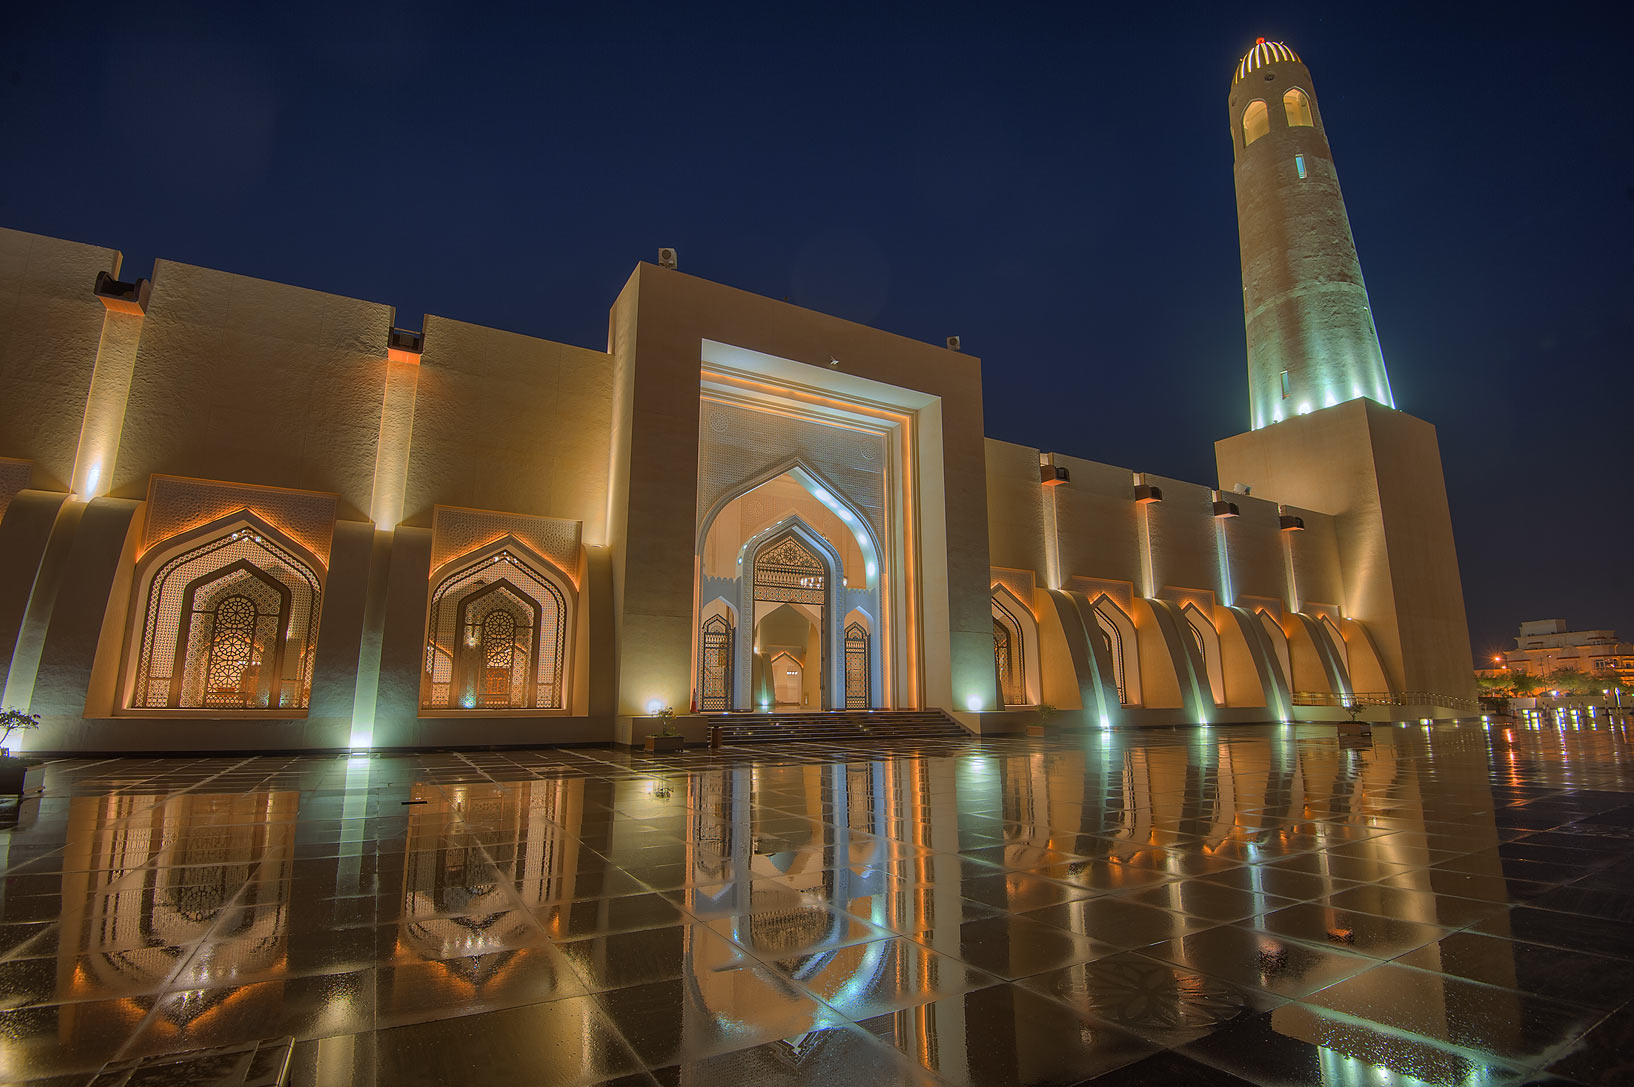 Women's gate of State Mosque (Sheikh Muhammad Ibn...Mosque) after a rain. Doha, Qatar